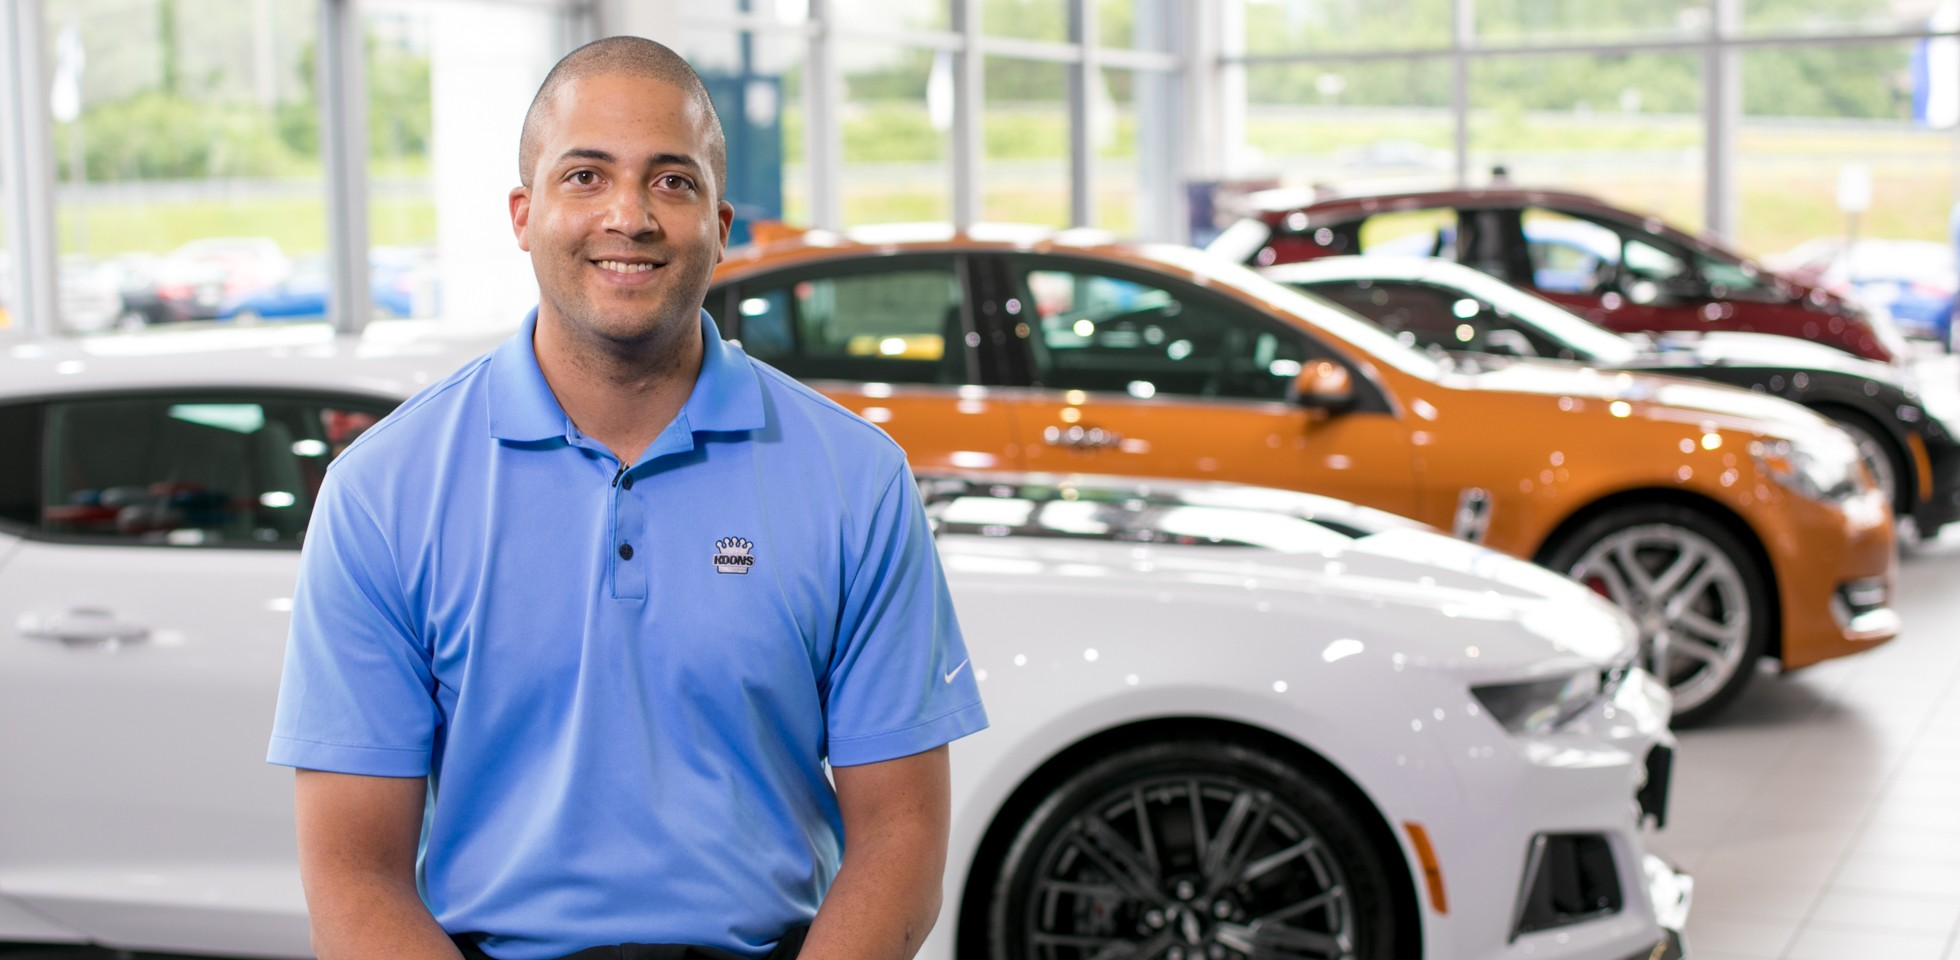 Jim Koons Automotive Employee